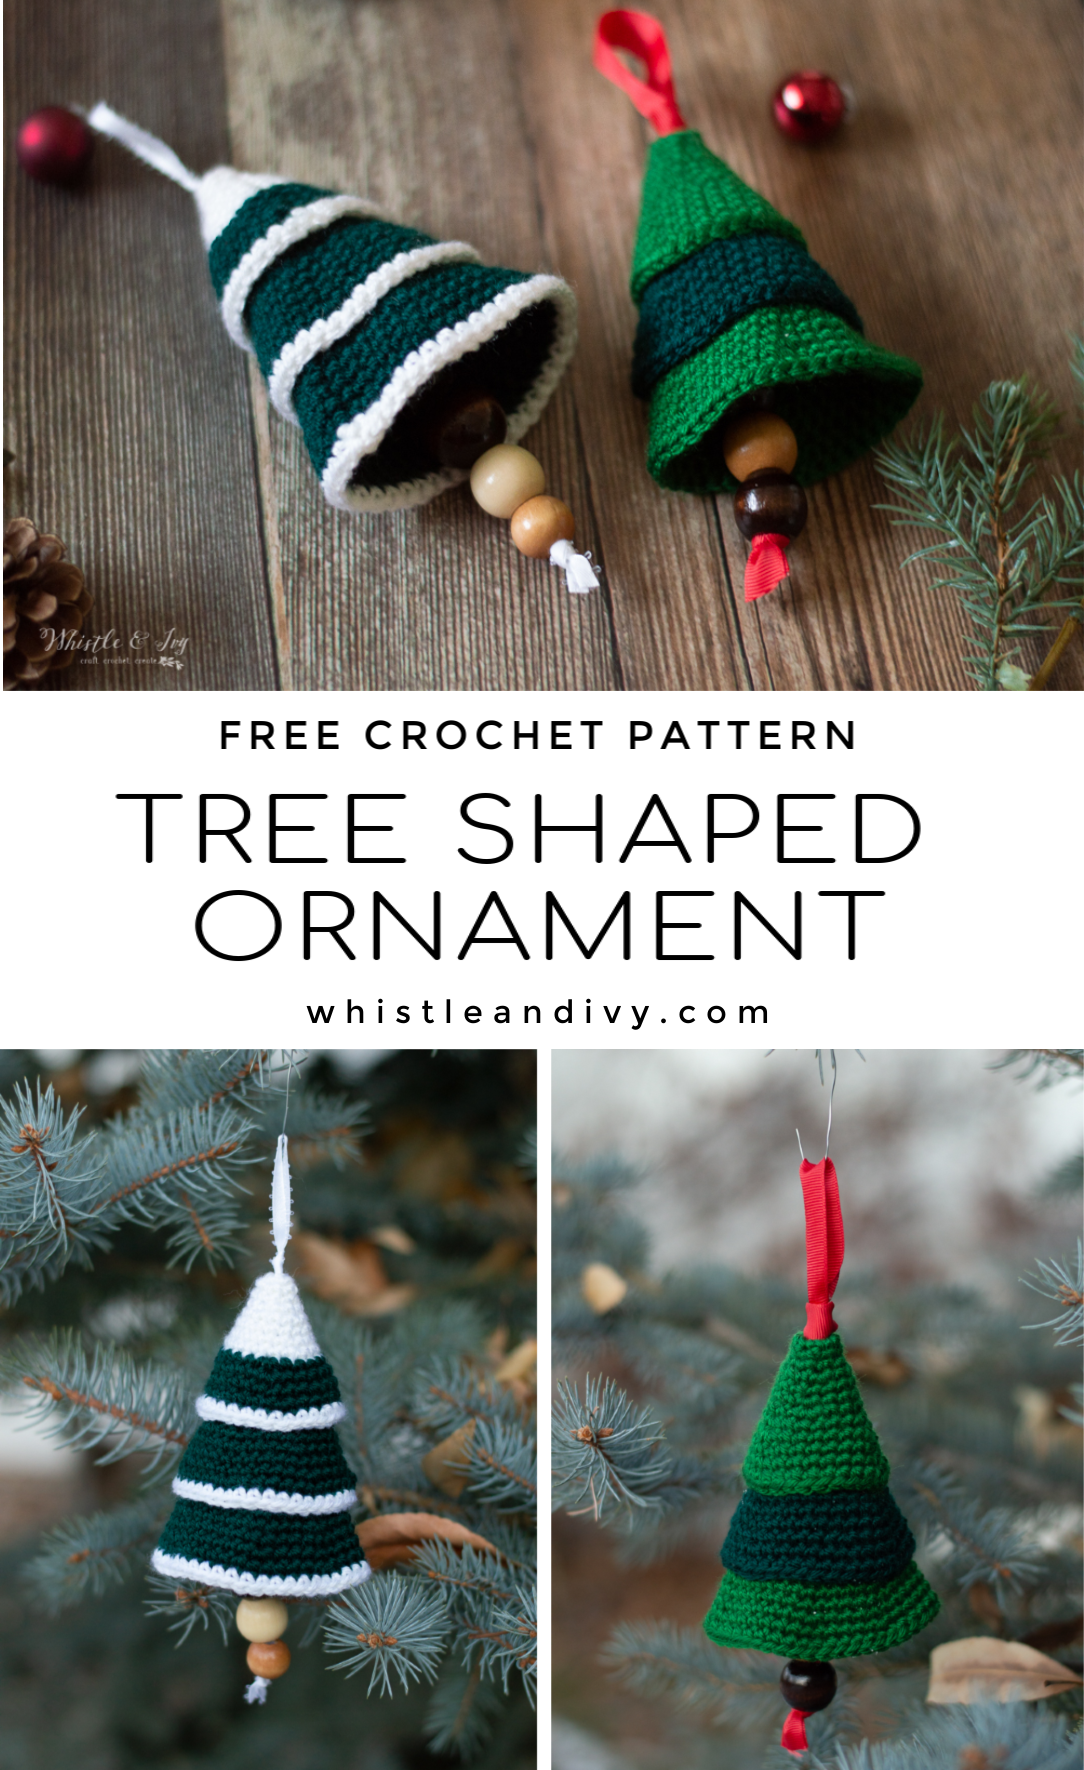 cute crochet tree shaped ornament for Christmas and holiday free pattern